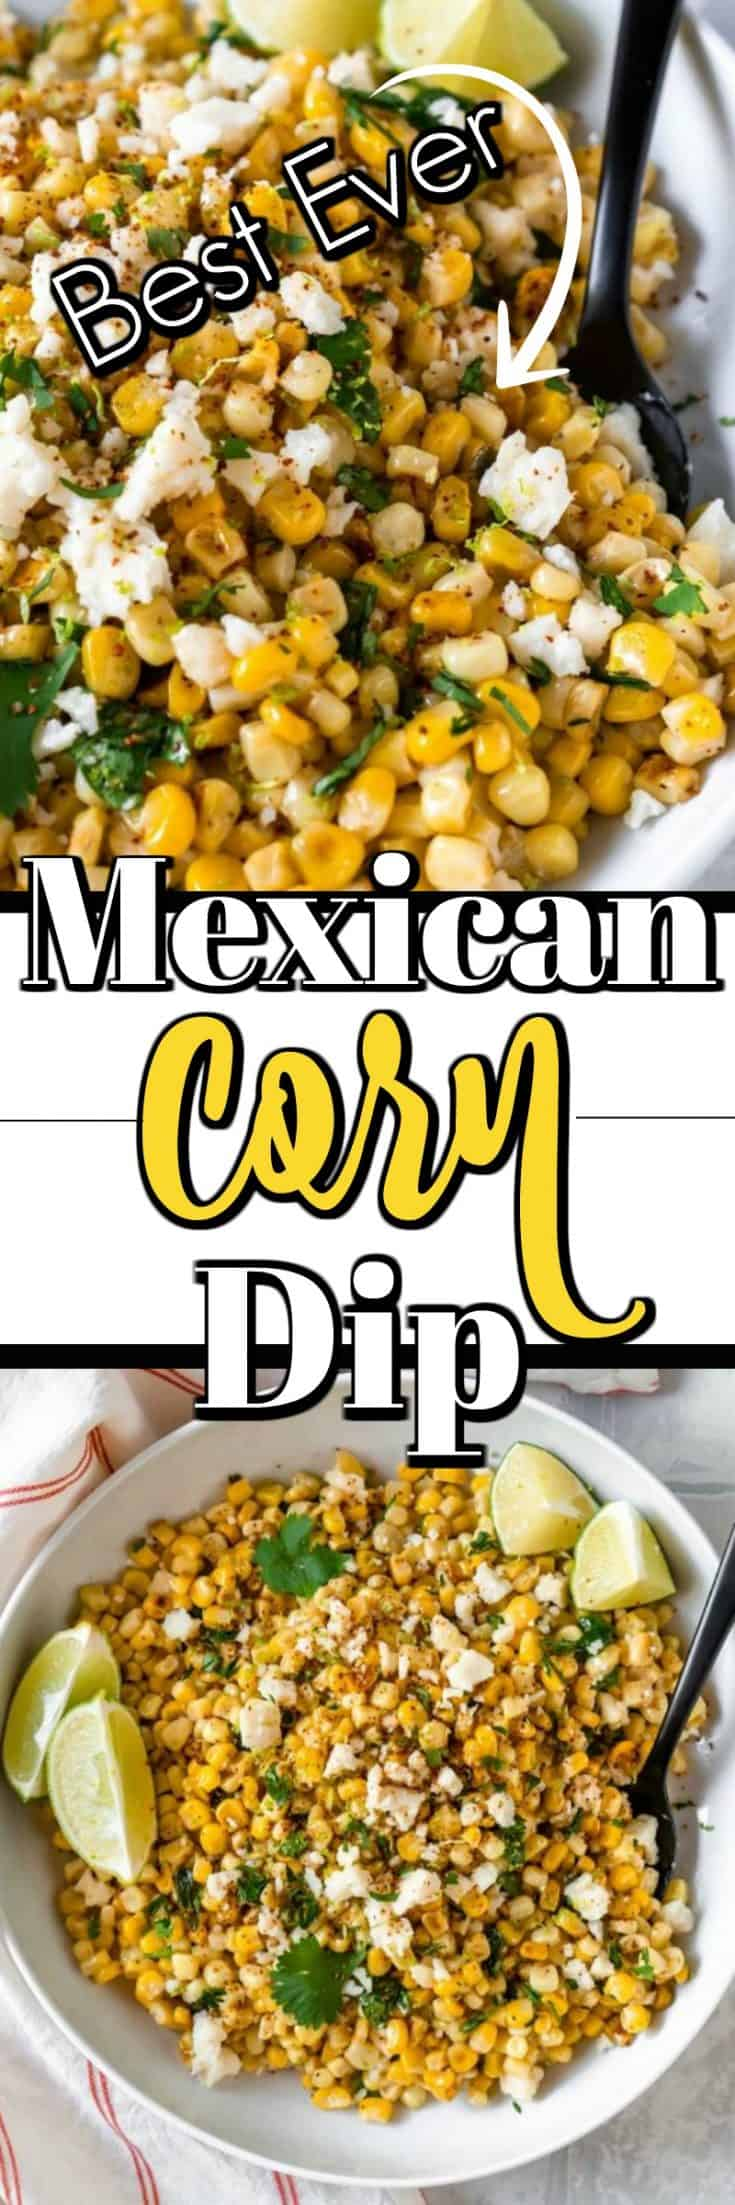 This Best Ever Mexican Corn Dip will be the hit of any party with sweet corn, zesty jalapenos, cojita cheese and cilantro. Make extra as it will disappear quickly!! #corndip #Mexican